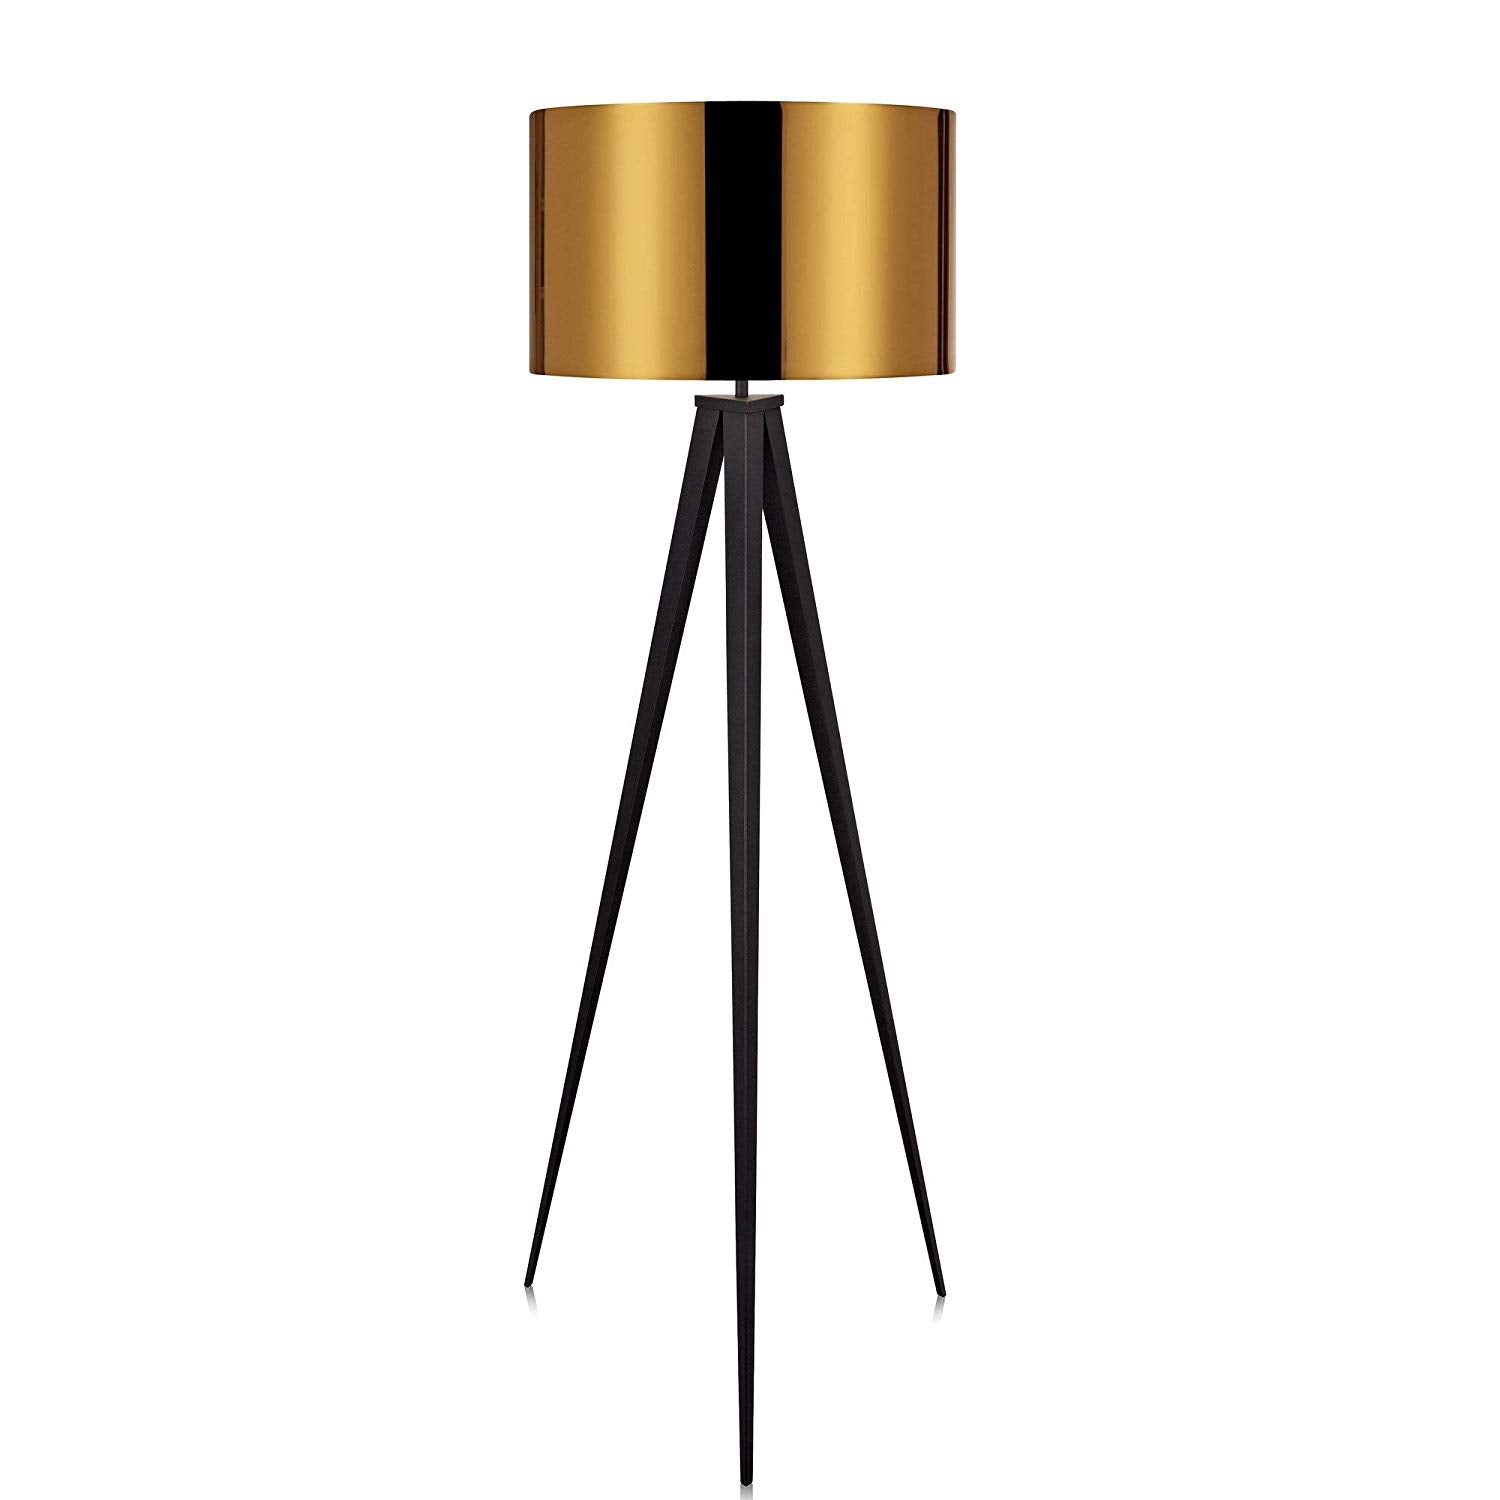 "Gold Tripod Floor Lamp 60"" Cordless 3 Leg Reading Lamp Large Standing Lamp Modern Contemporary Living Room Iron Metal"